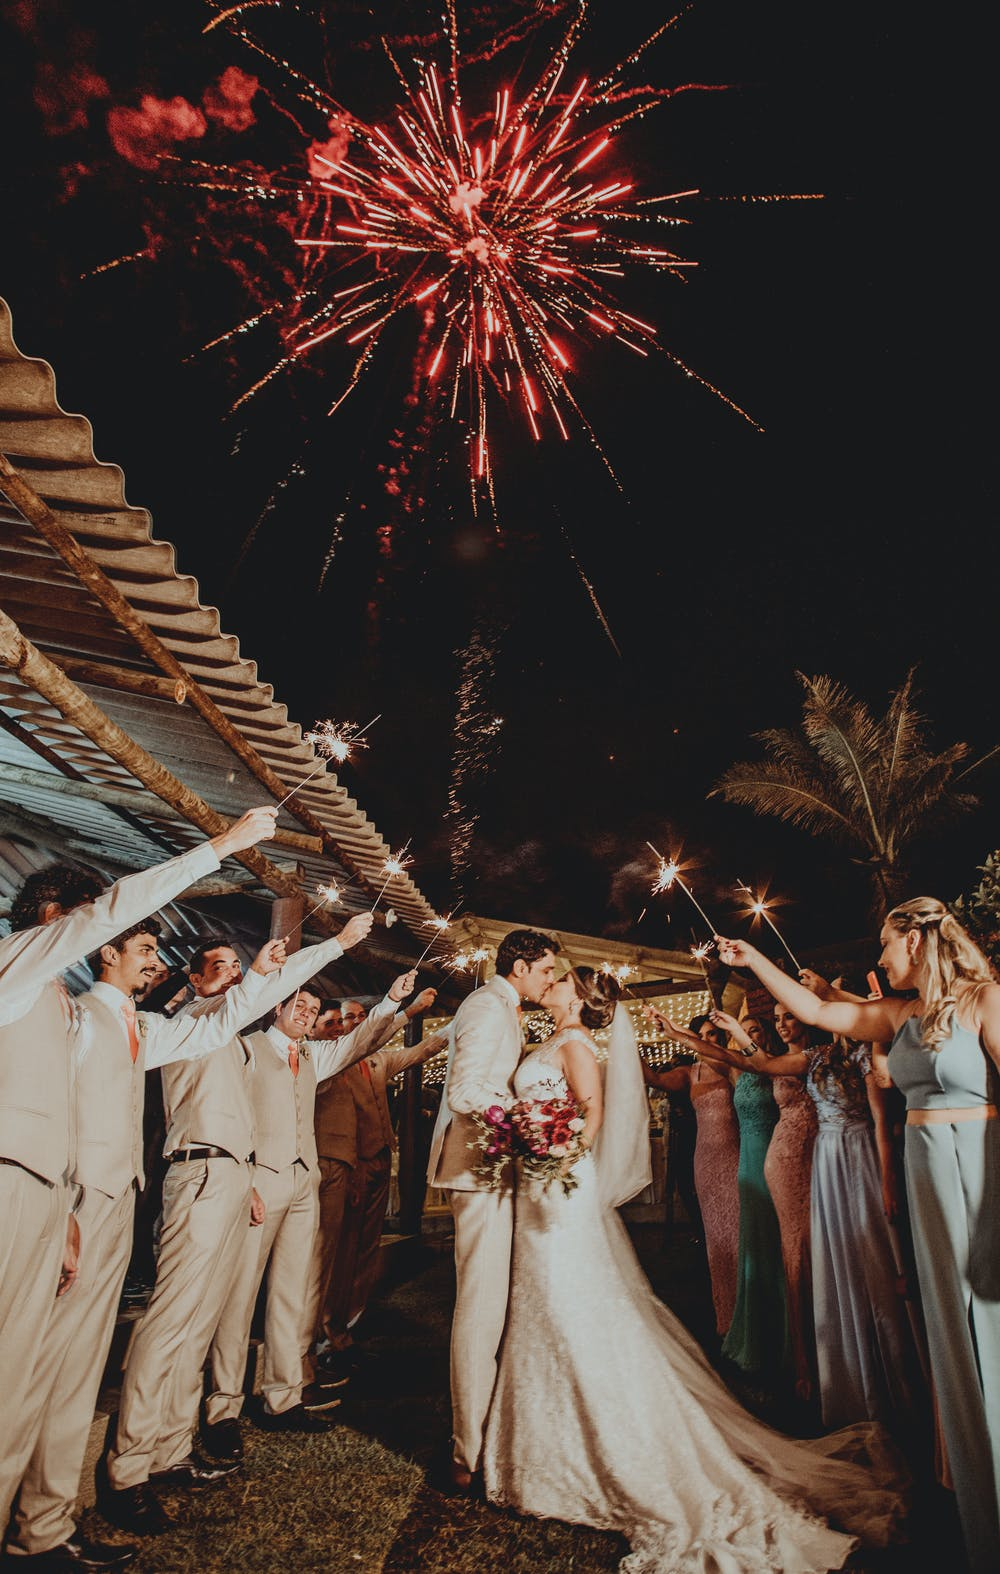 wedding customs, line of men and women holding sparklers over bride and groom